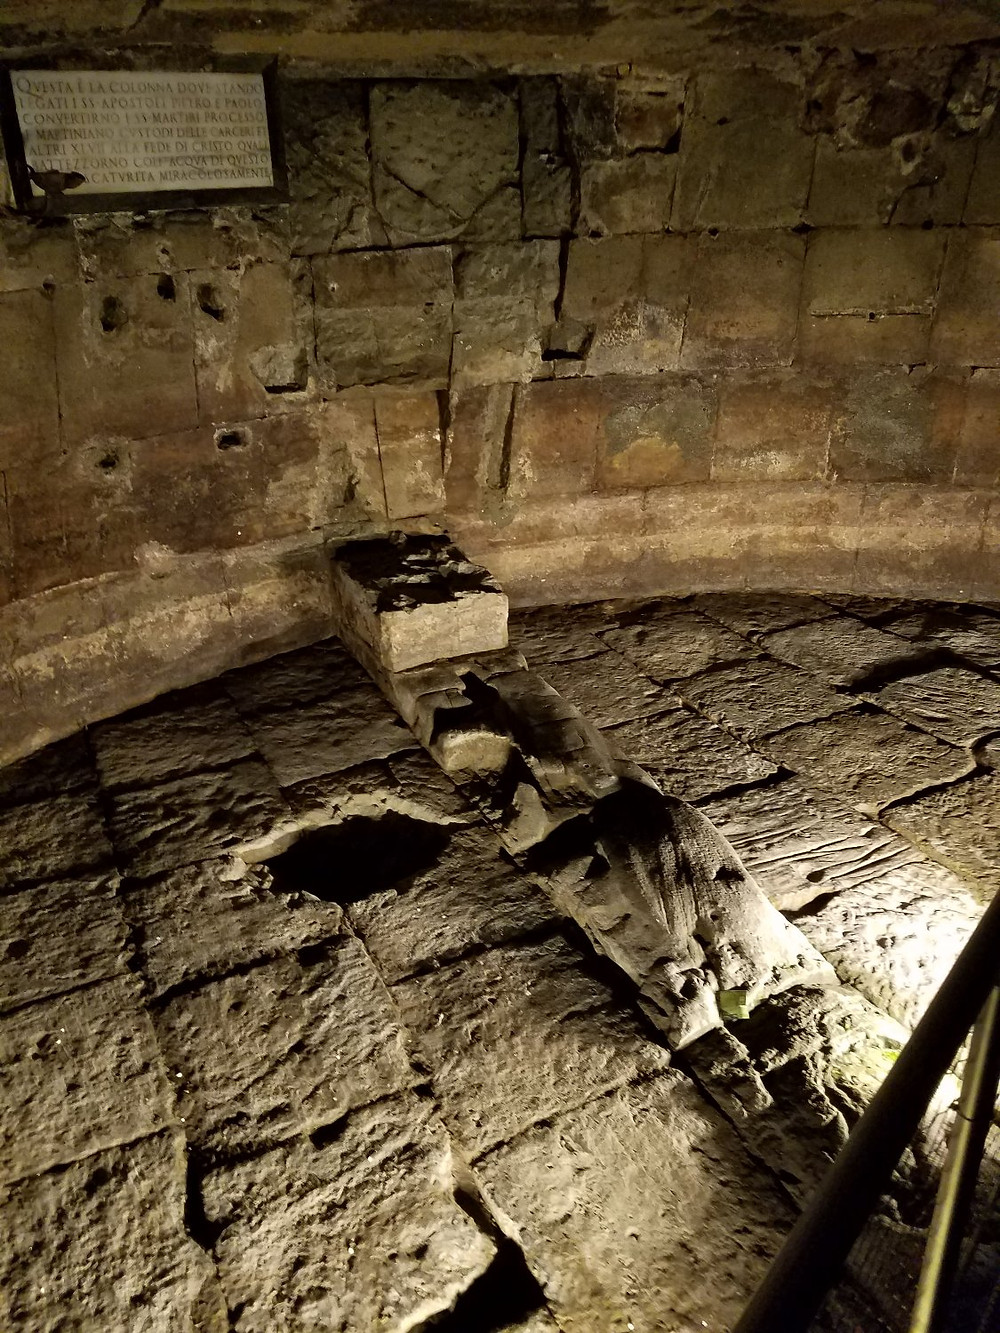 Inside Mafmertine prison in Rome where Peter and possibly Paul were imprisoned